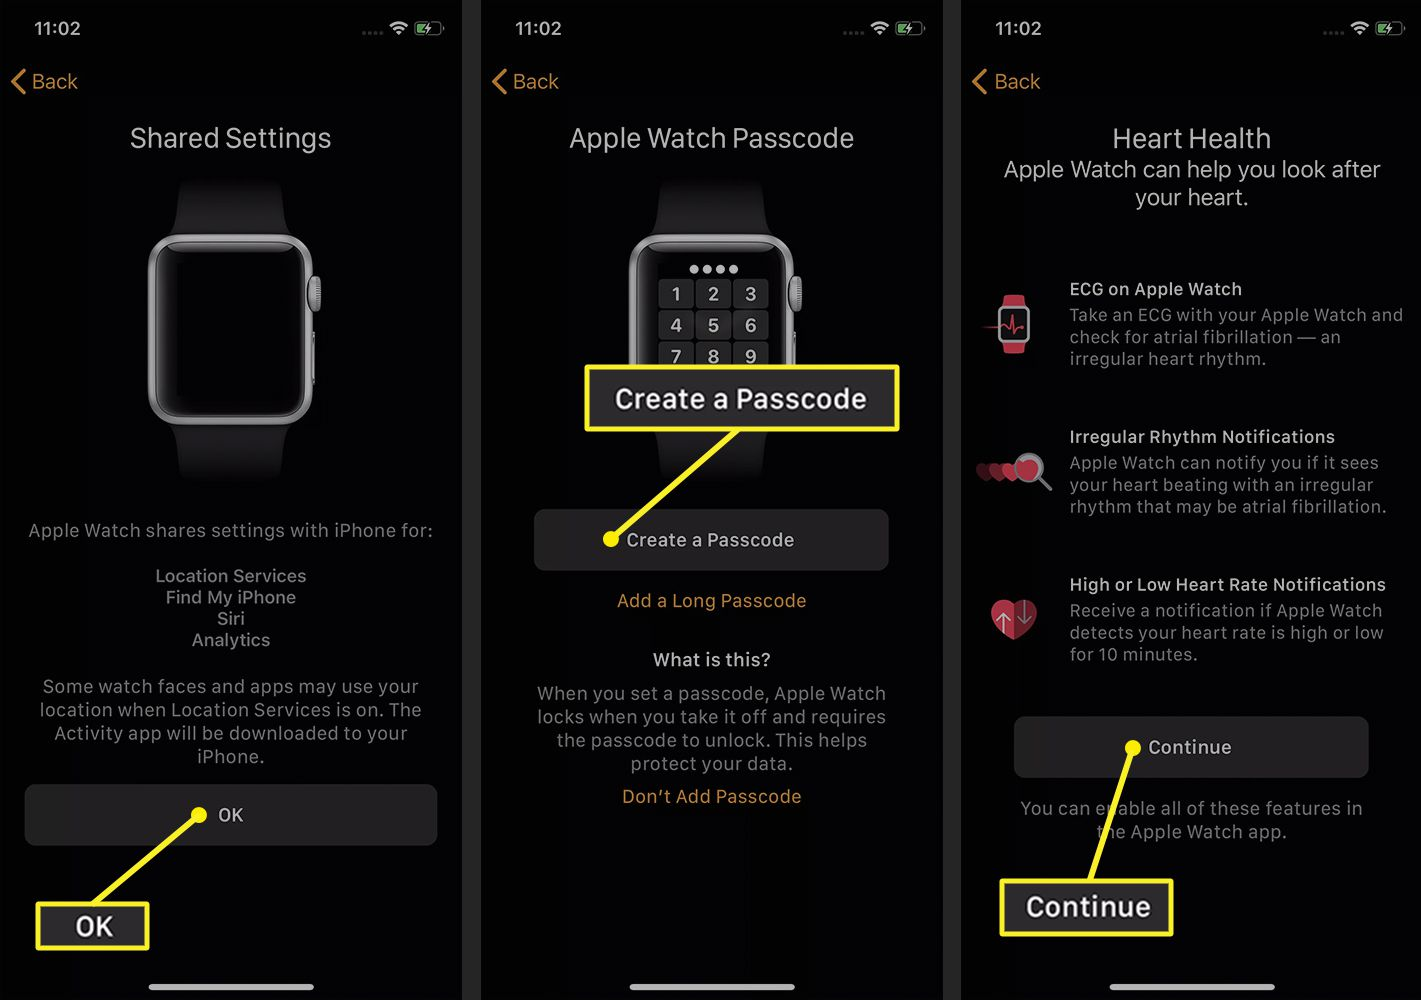 Watch app on iPhone showing Settings, Passcode setup, and Health information